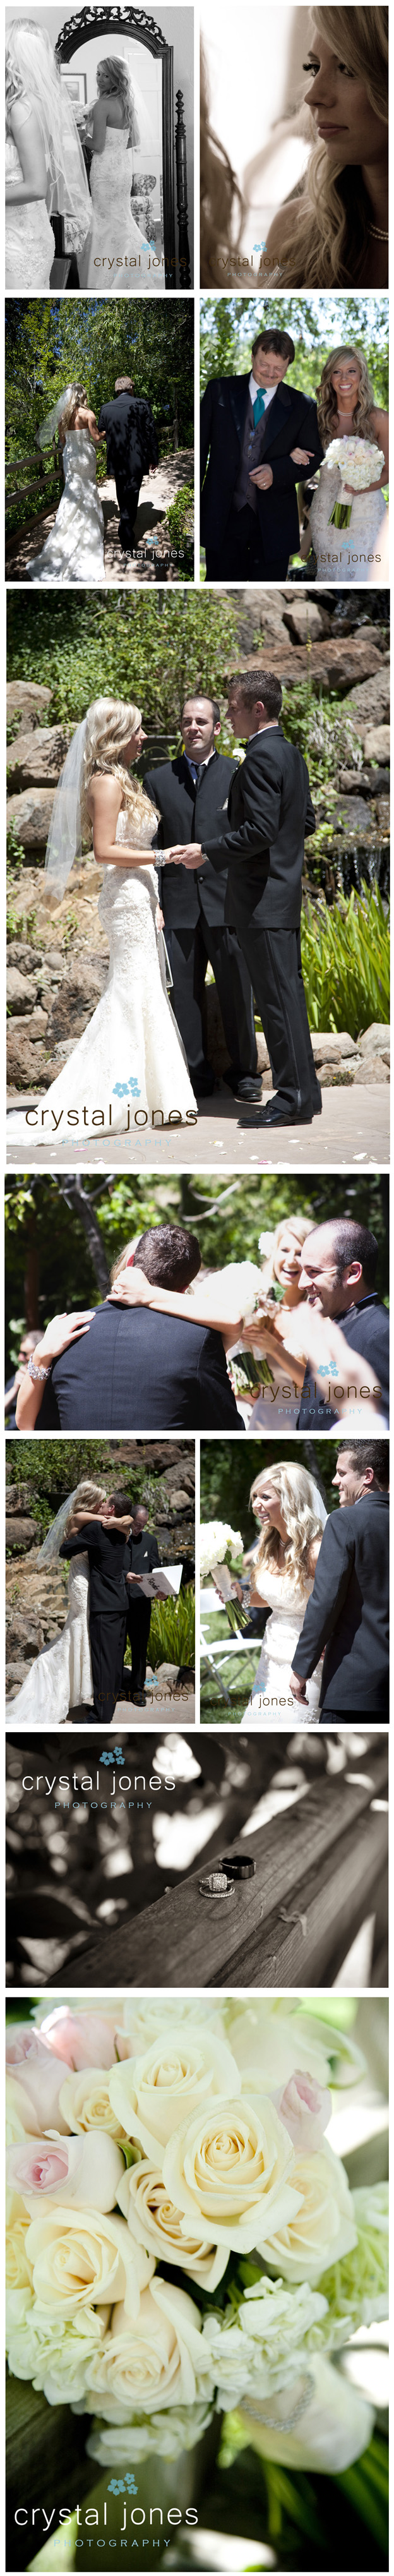 outdoor wedding at hanford court in sutter creek california